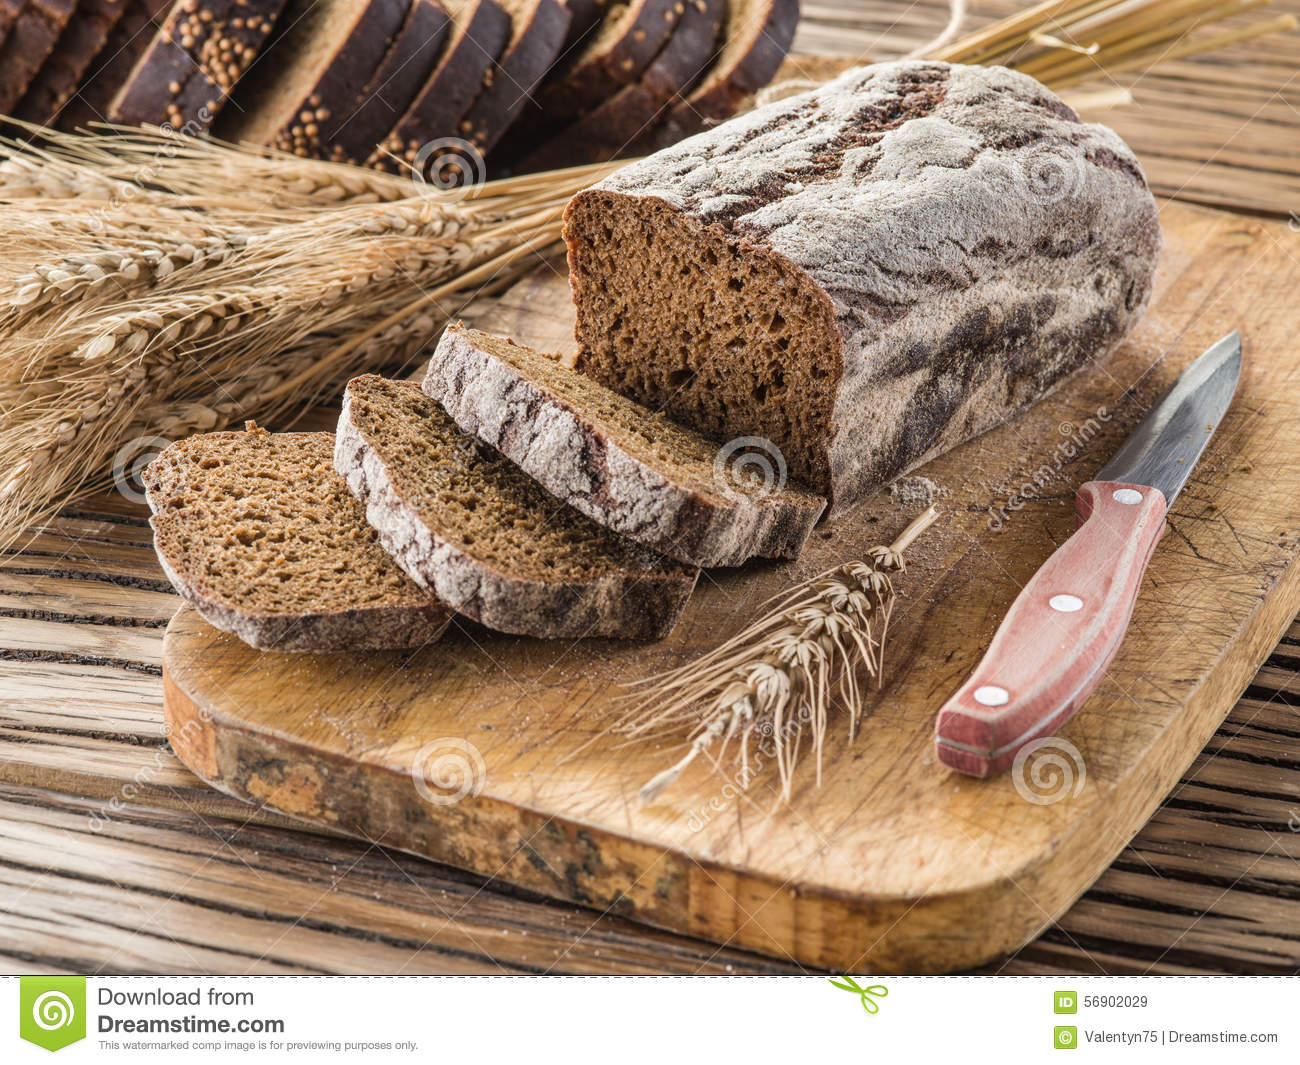 Sliced black bread on the wooden plank.